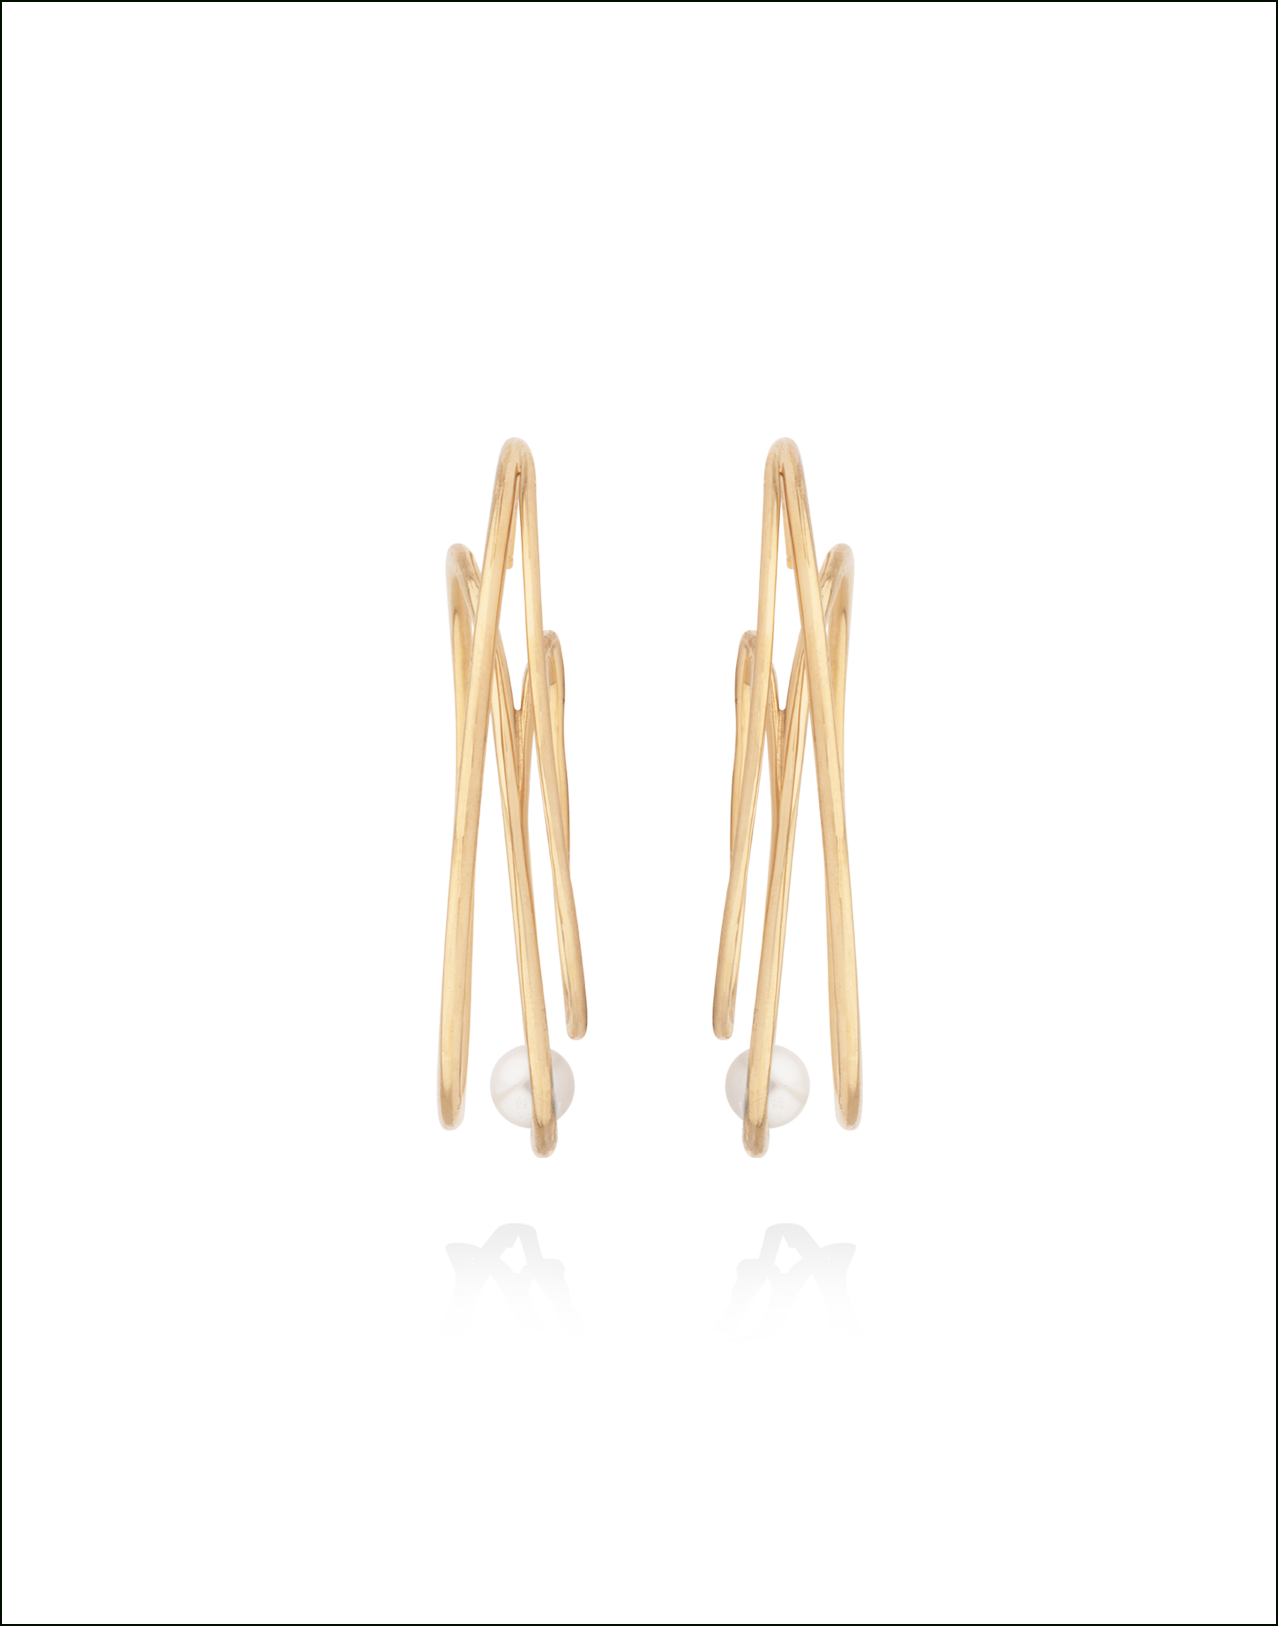 Completedworks-Earrings-Gold-Vermeil-The-Laws-of-Gravity-2-1.png